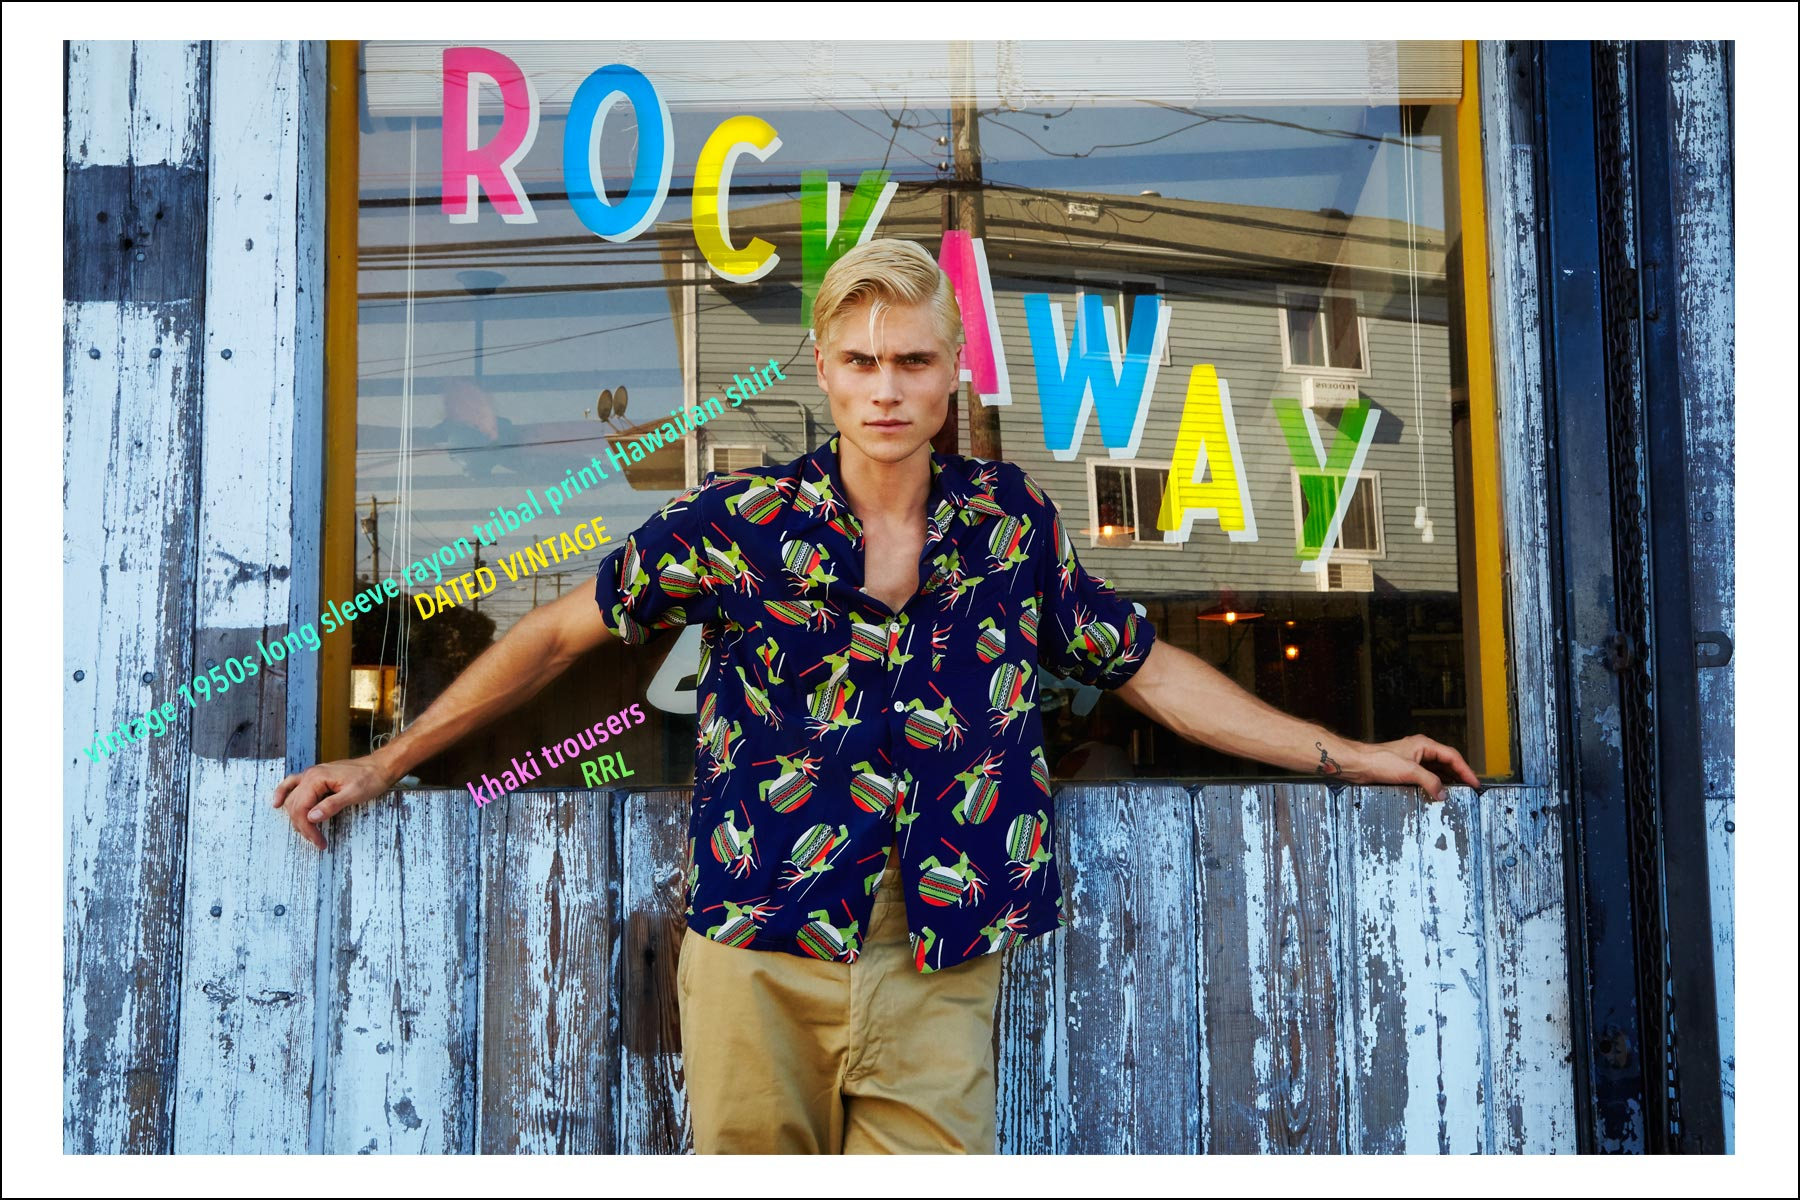 Male model Jake Filling photographed in the Rockaways for a vintage menswear editorial. Photography by Alexander Thompson for Ponyboy magazine NY.